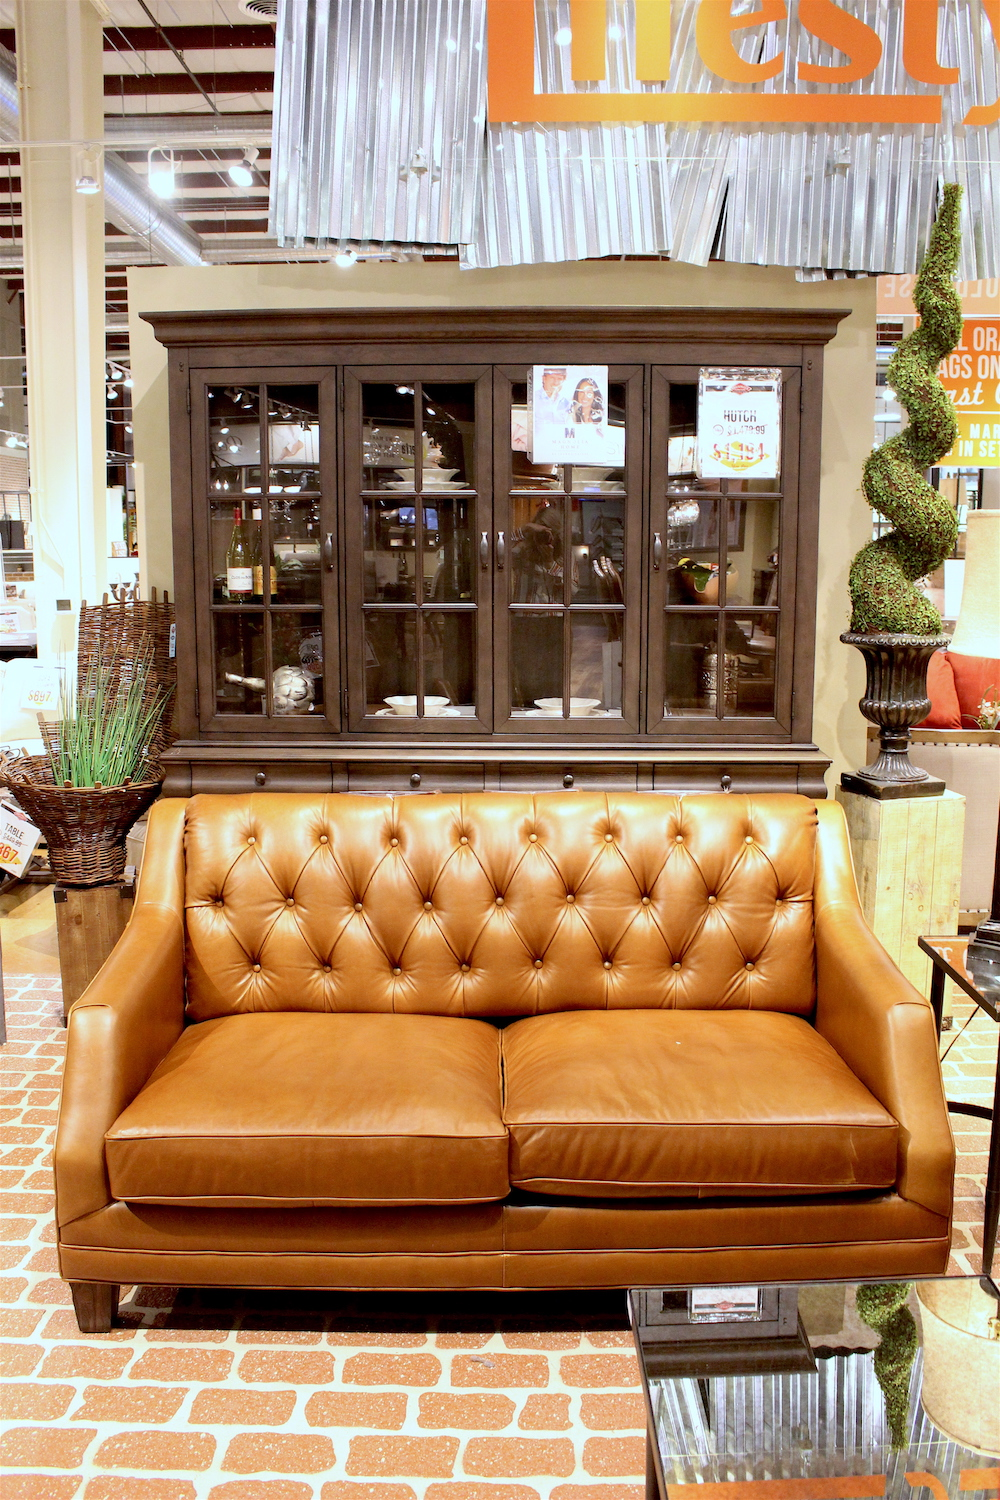 Underpriced-Furniture-Atlanta-Review-3